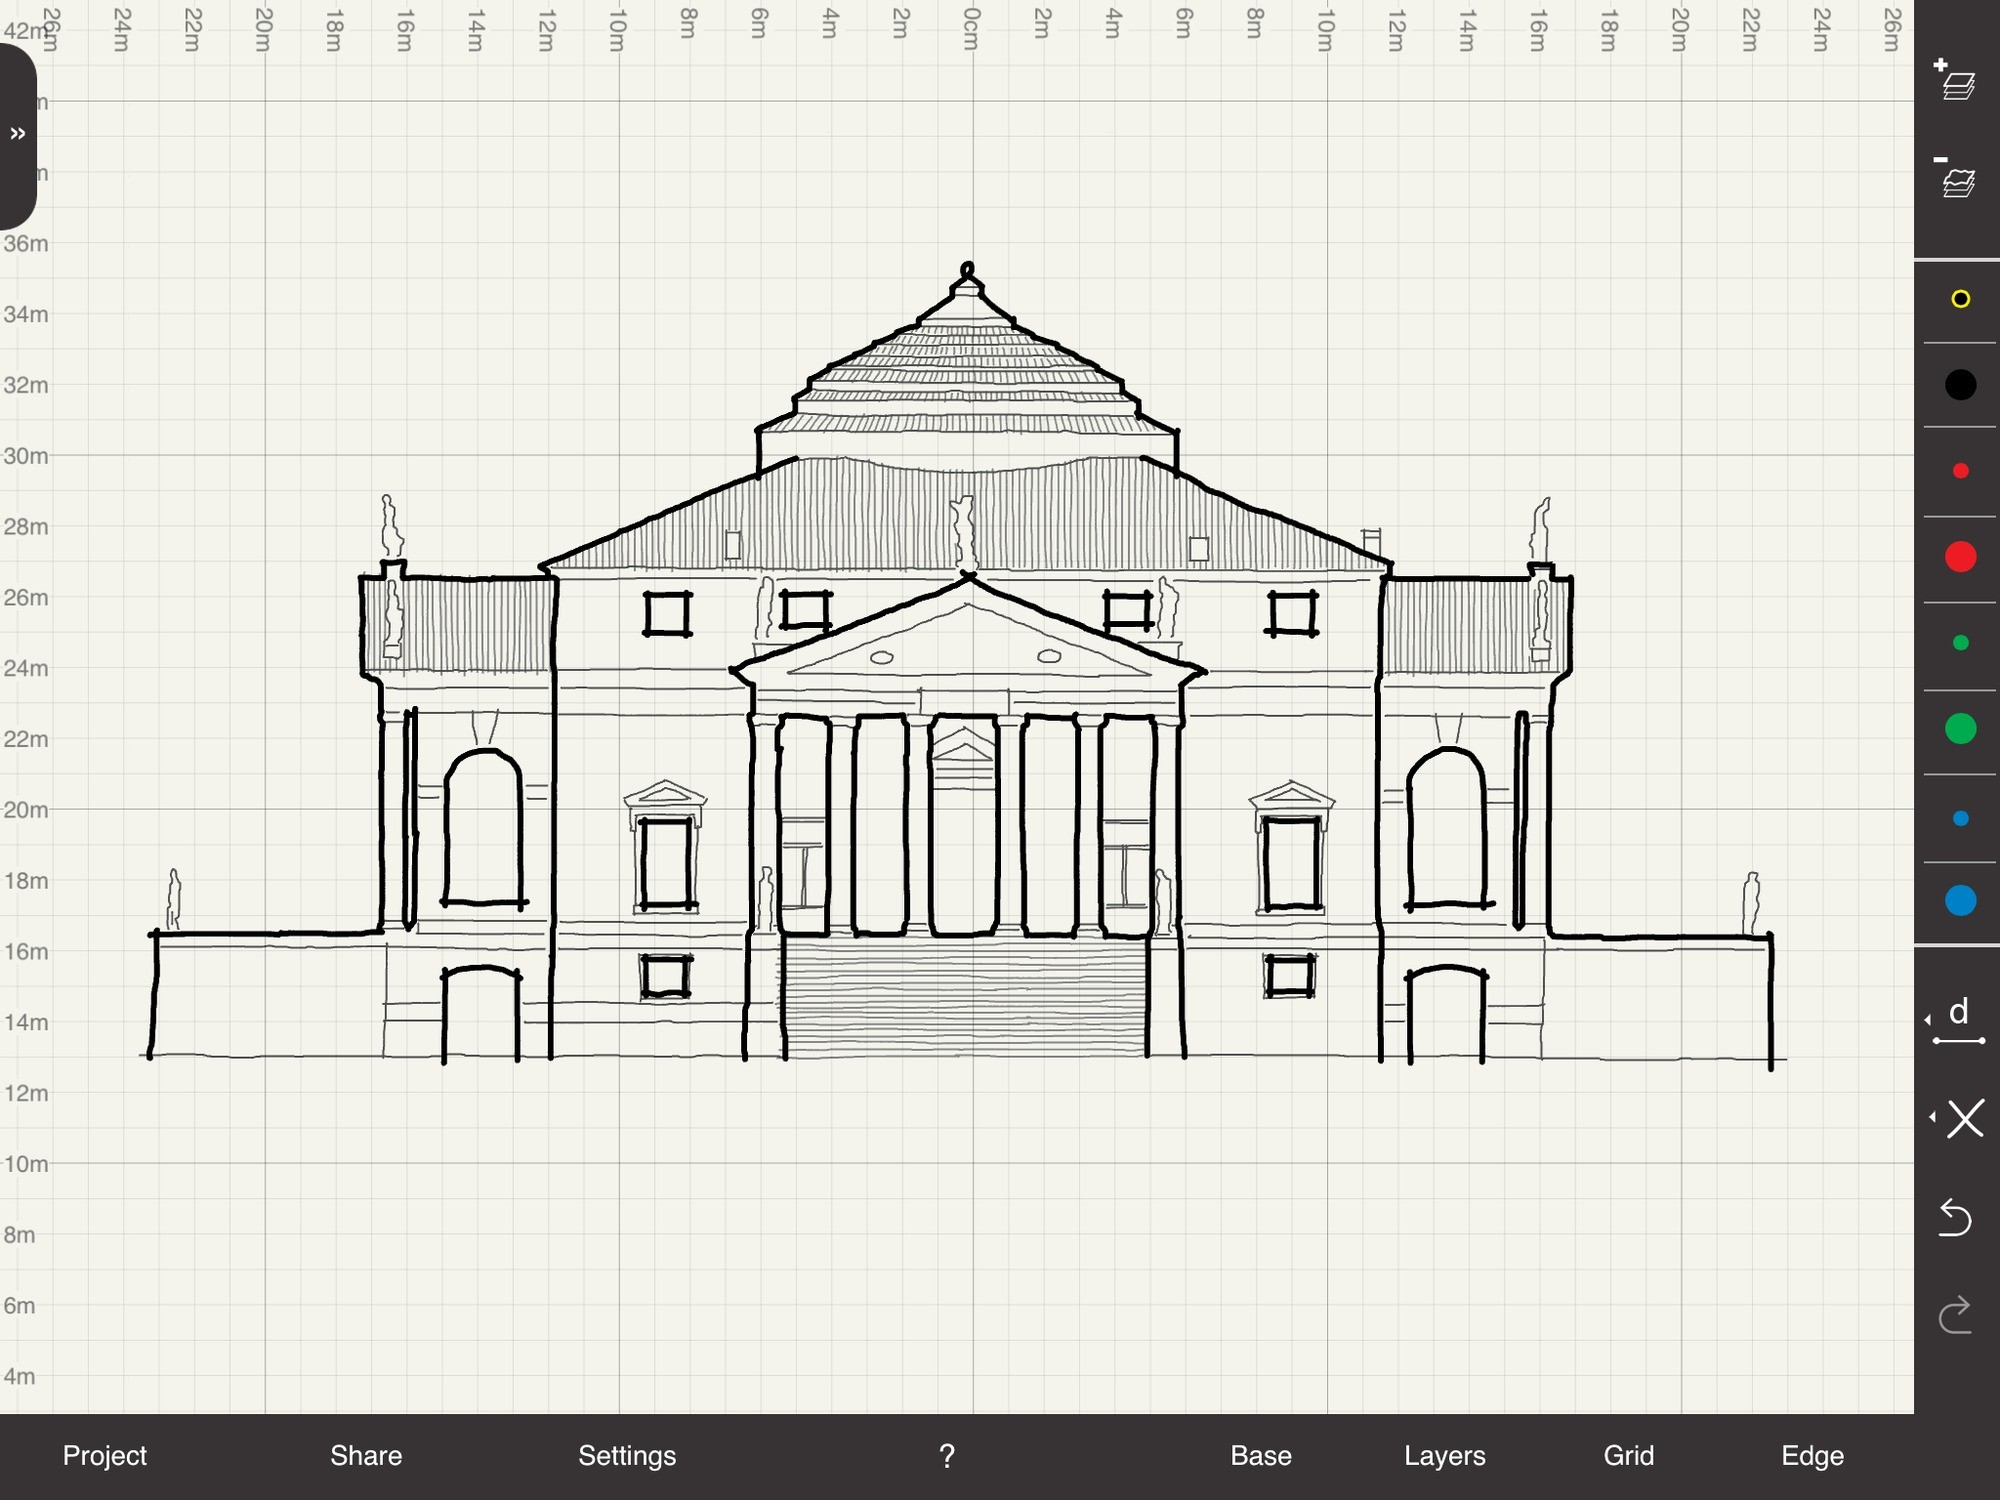 Arrette Scale: Palladio's Villa Rotunda. Image Courtesy of Arrette Scale